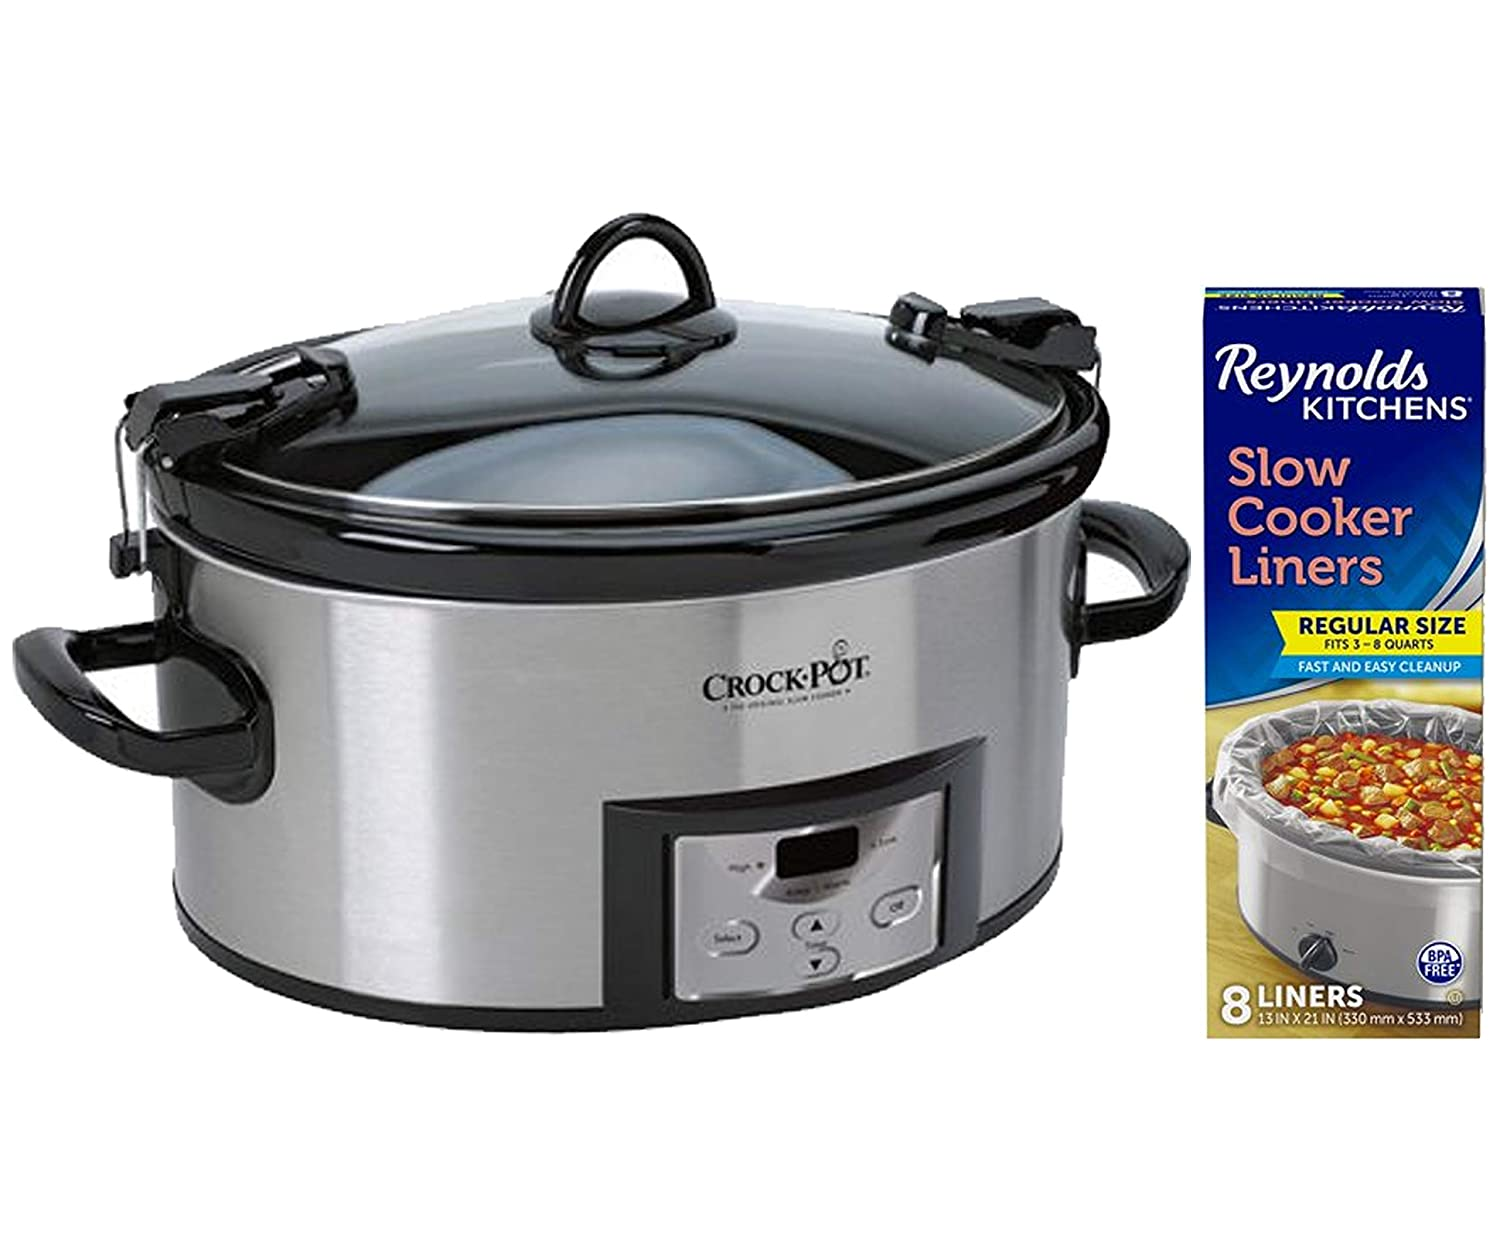 Crock-Pot Cook and Carry Programmable 6 Quart Slow Cooker with Digital Timer, Stainless Steel bundle with Reynolds Kitchens Slow Cooker Liners, 13 Inches by 21 Inches, 8 Count